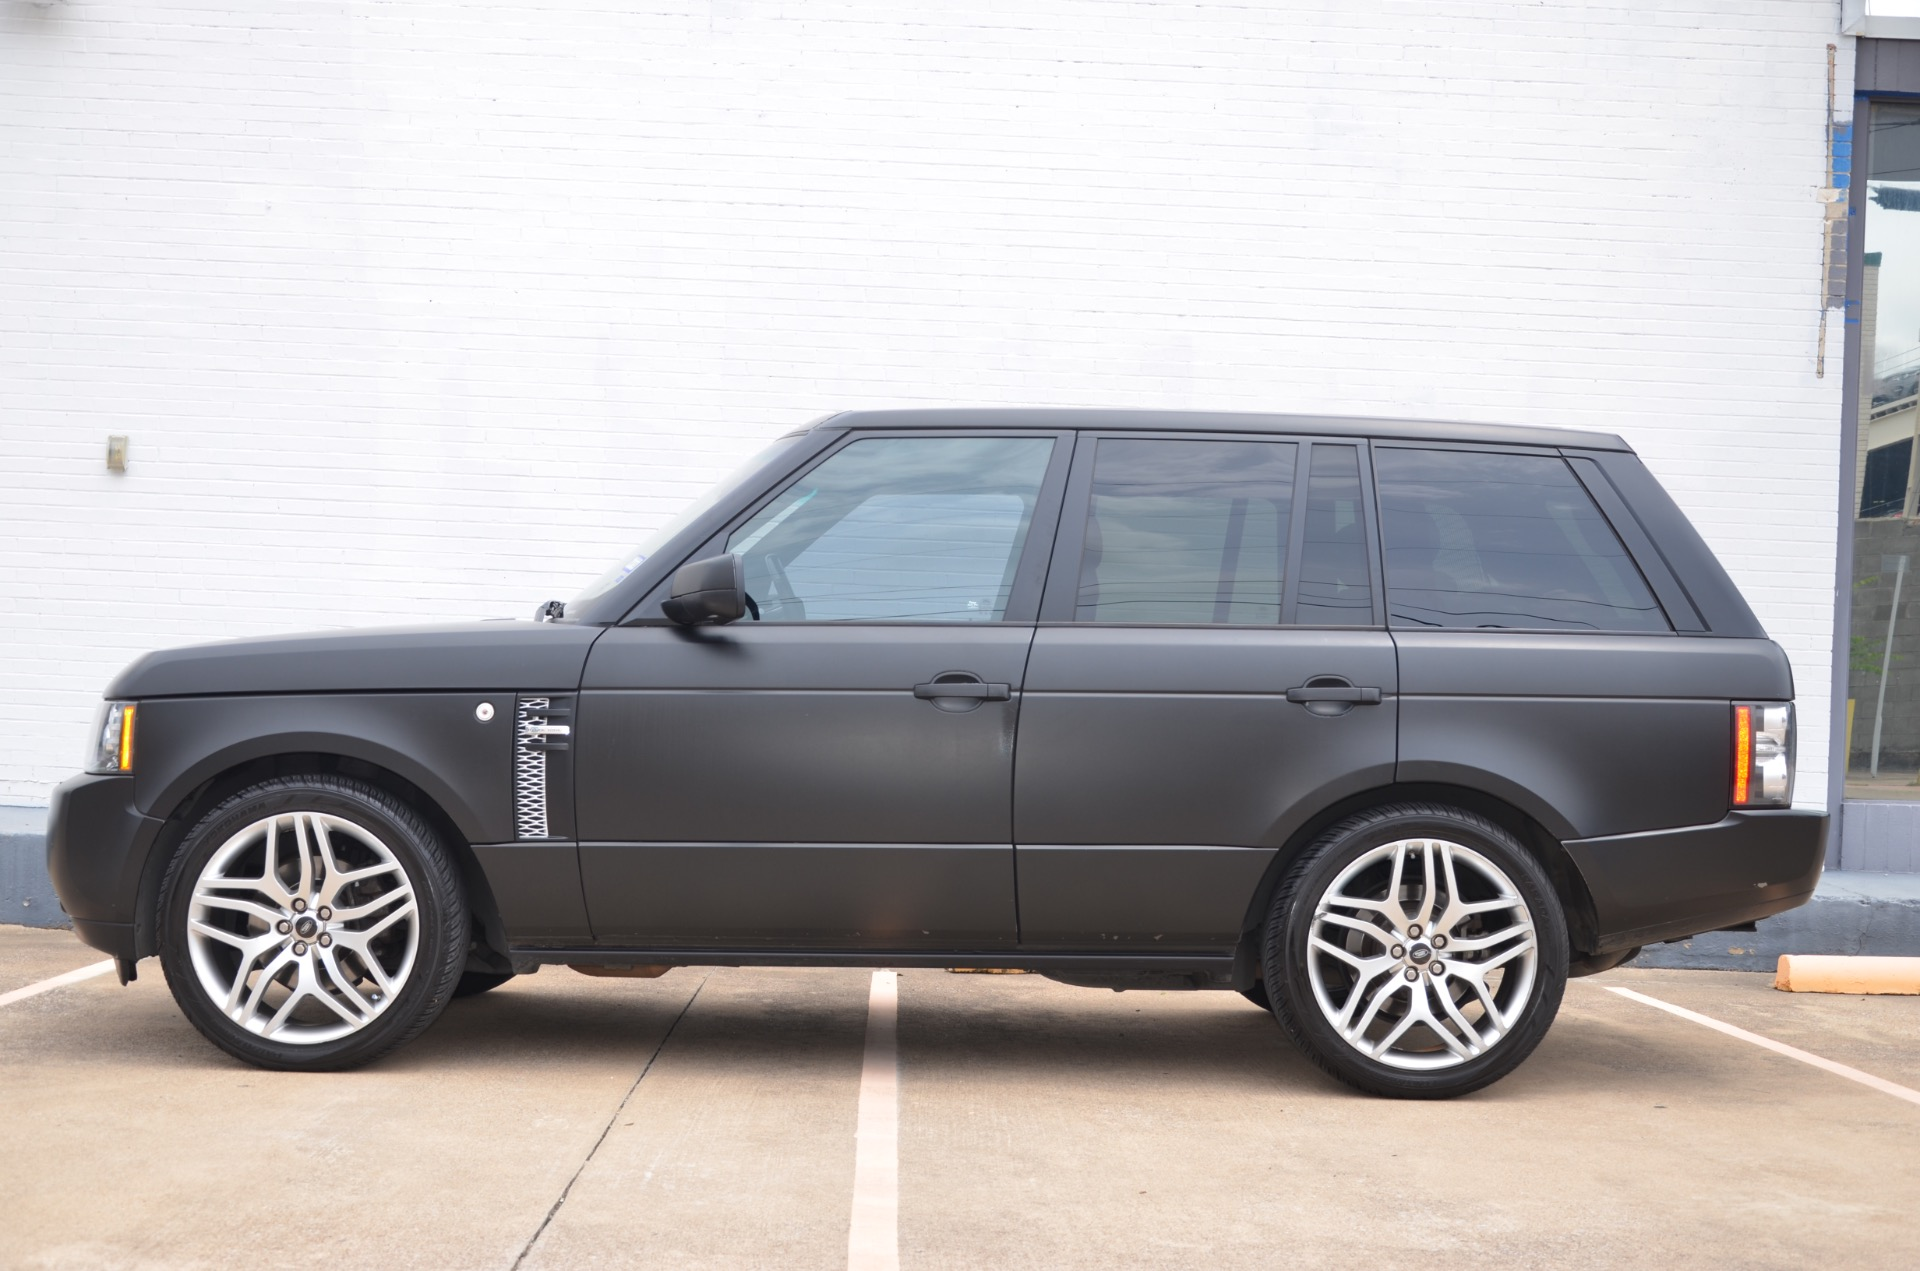 2010 land rover range rover hse lux stock 1orrhse for sale near dallas tx tx land rover dealer. Black Bedroom Furniture Sets. Home Design Ideas